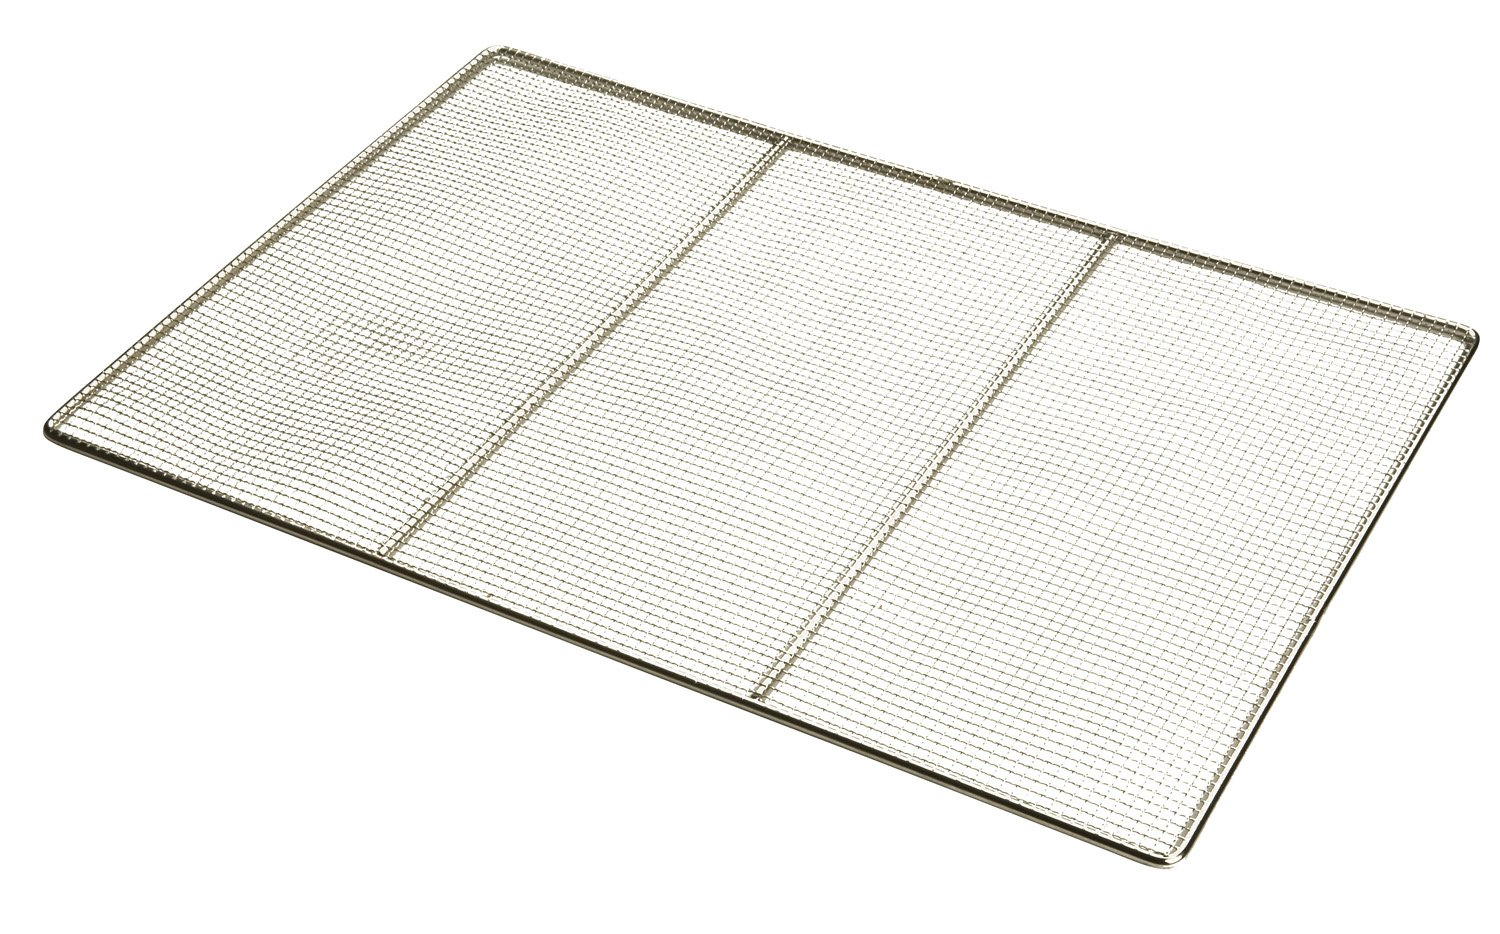 Focus Foodservice 17 by 25-Inch Woven Stainless Steel Fryer Grate